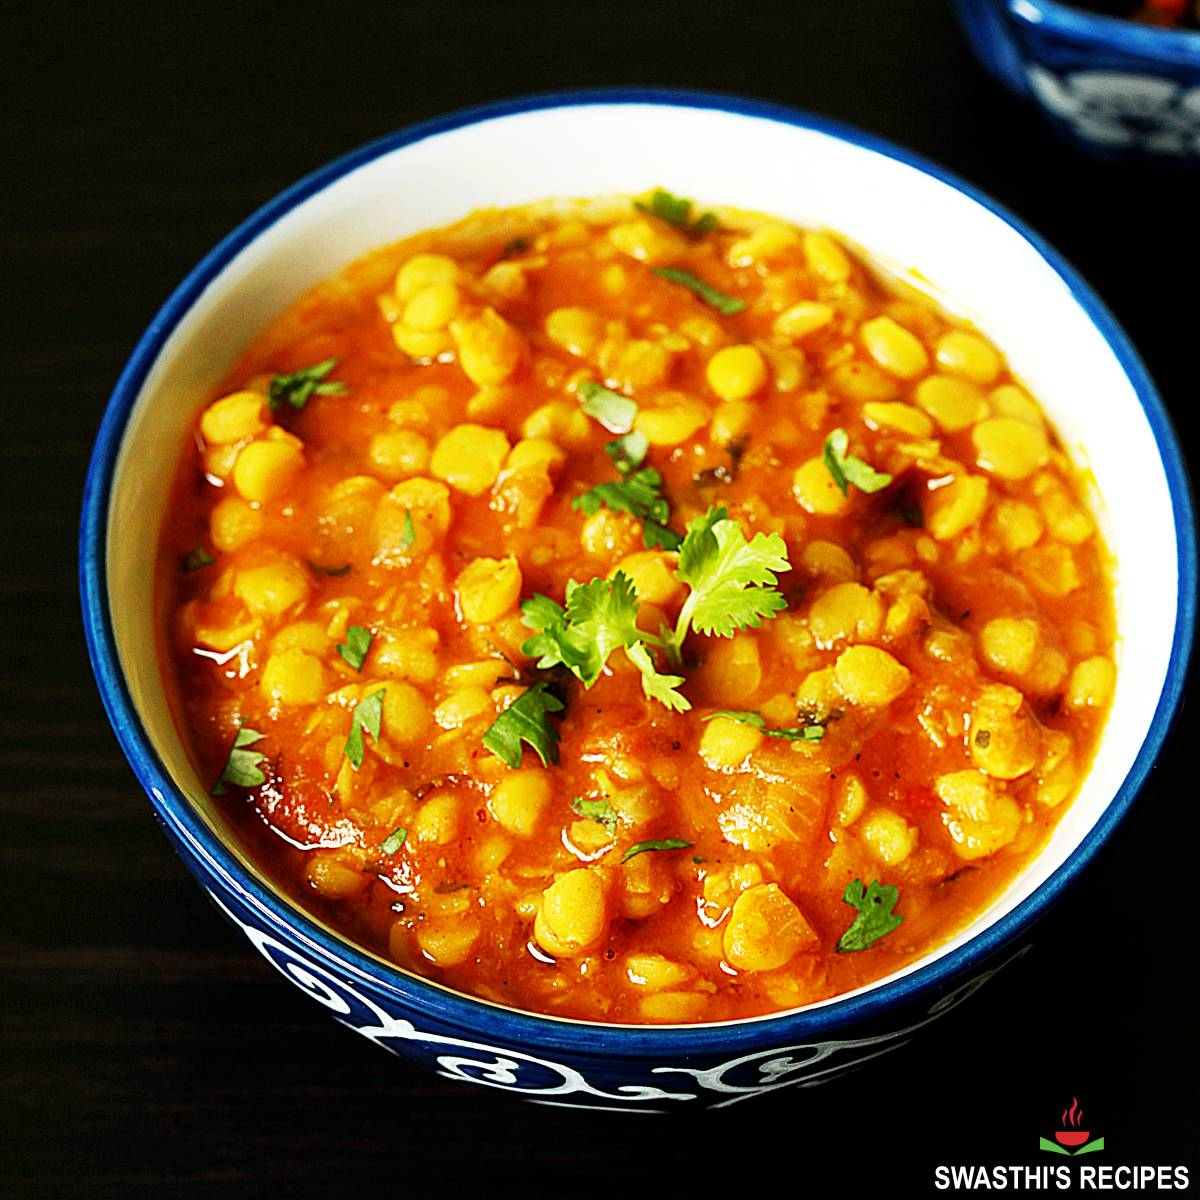 chana dal served in a blue and white bowl